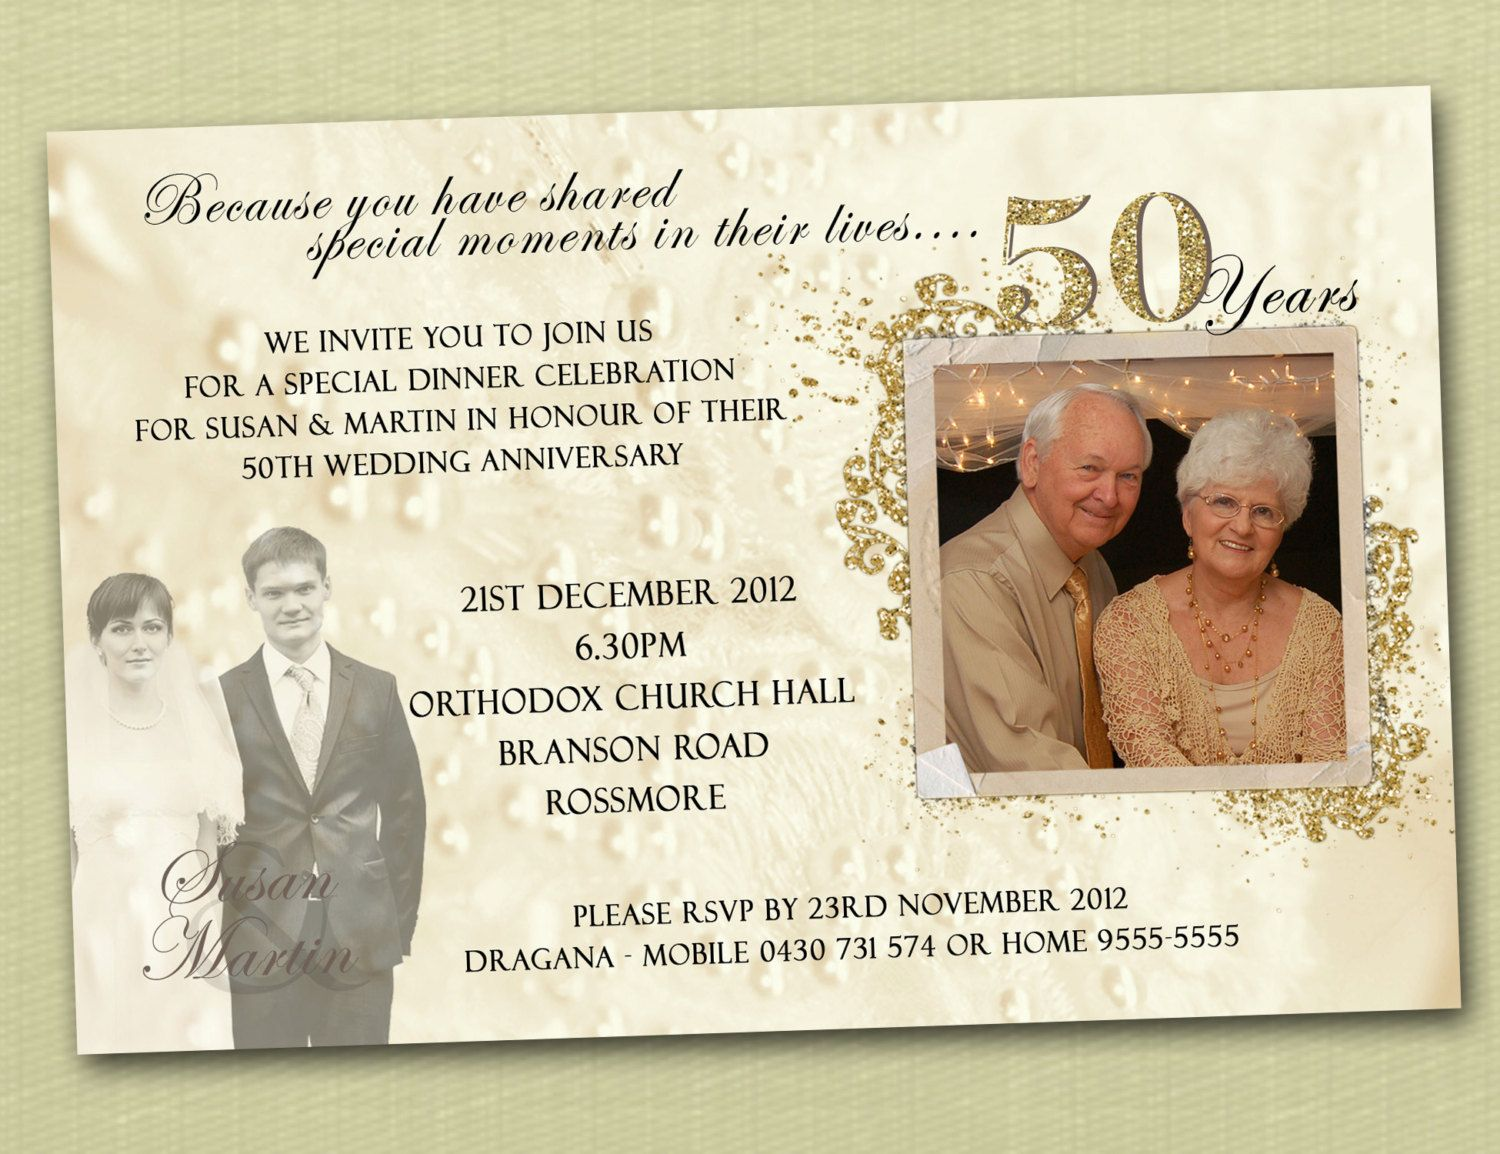 Ideas For 60th Wedding Anniversary Gifts For Parents: Wedding Anniversary Invitation With Photos